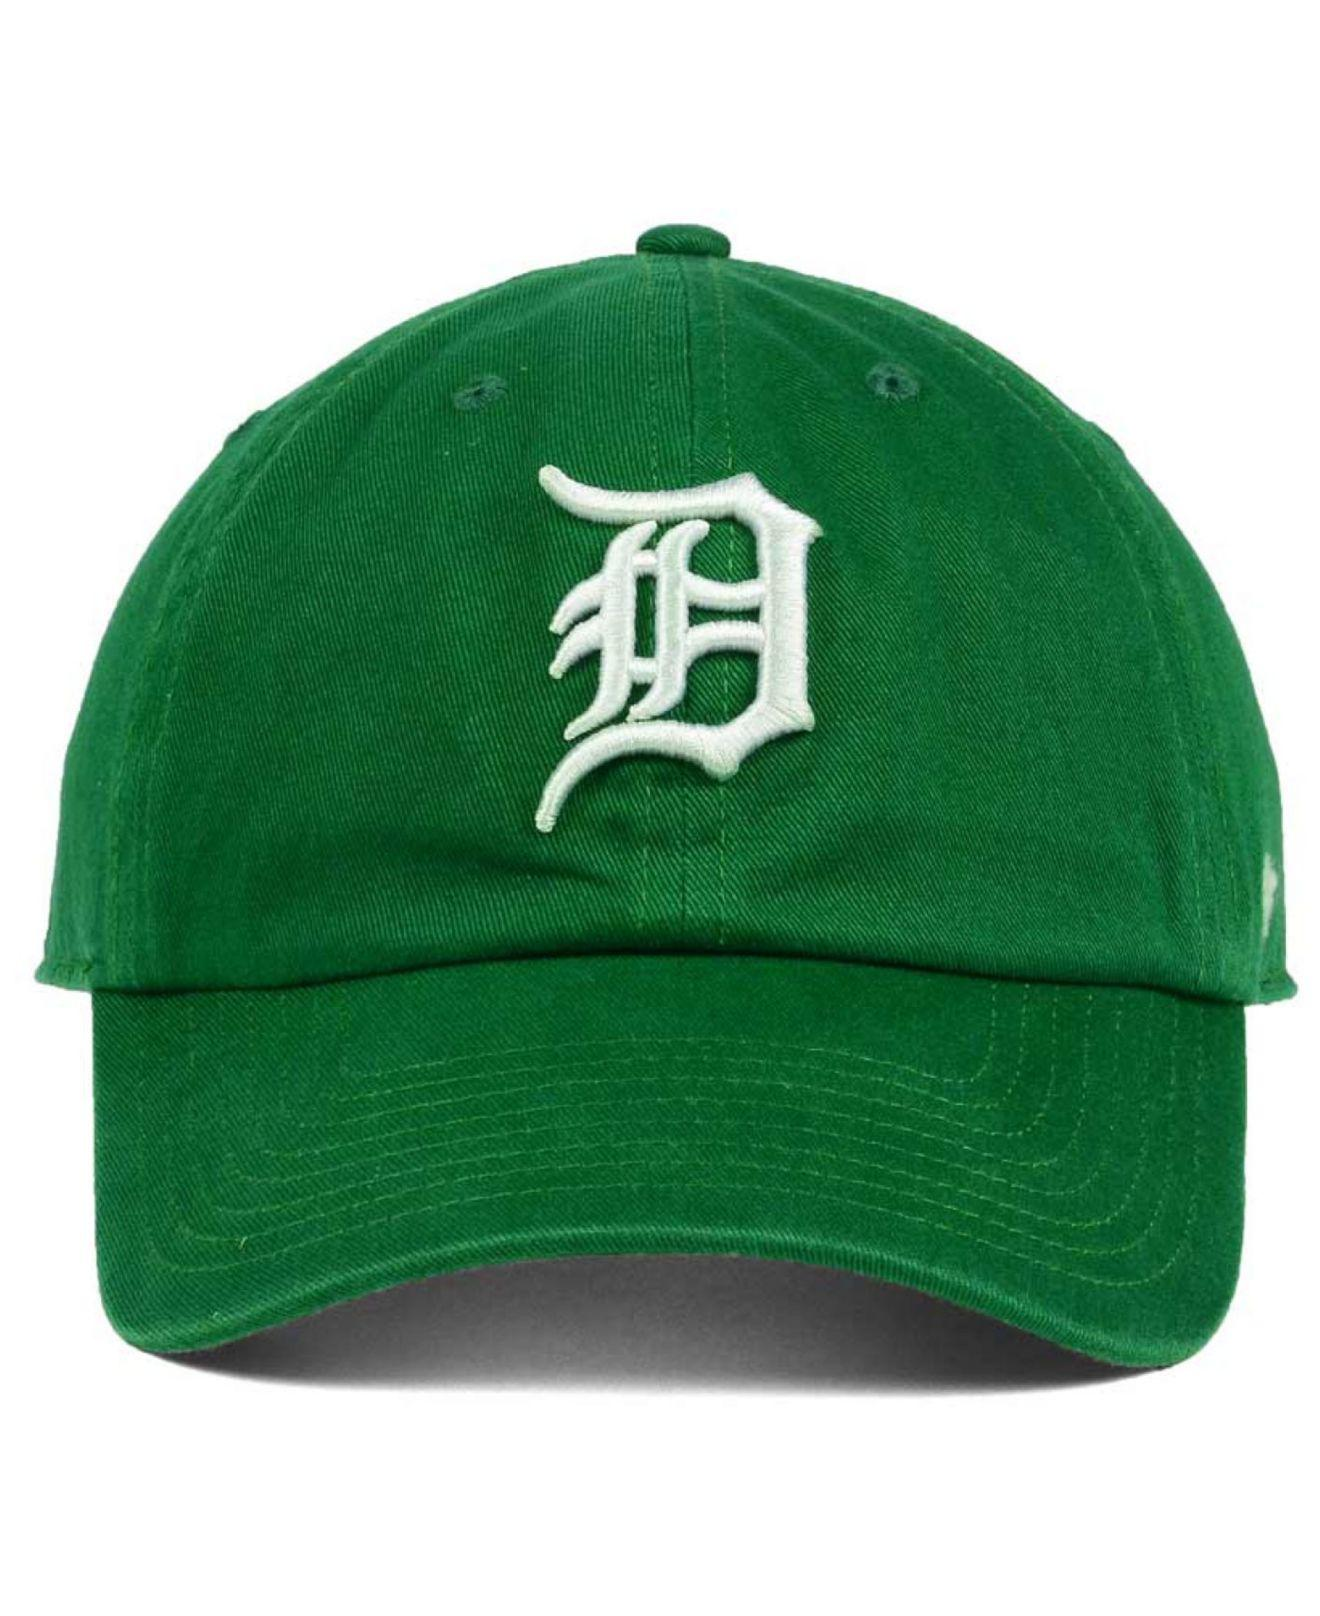 466150a3 ... buy lyst 47 brand detroit tigers kelly white clean up cap in green for  men ac57d